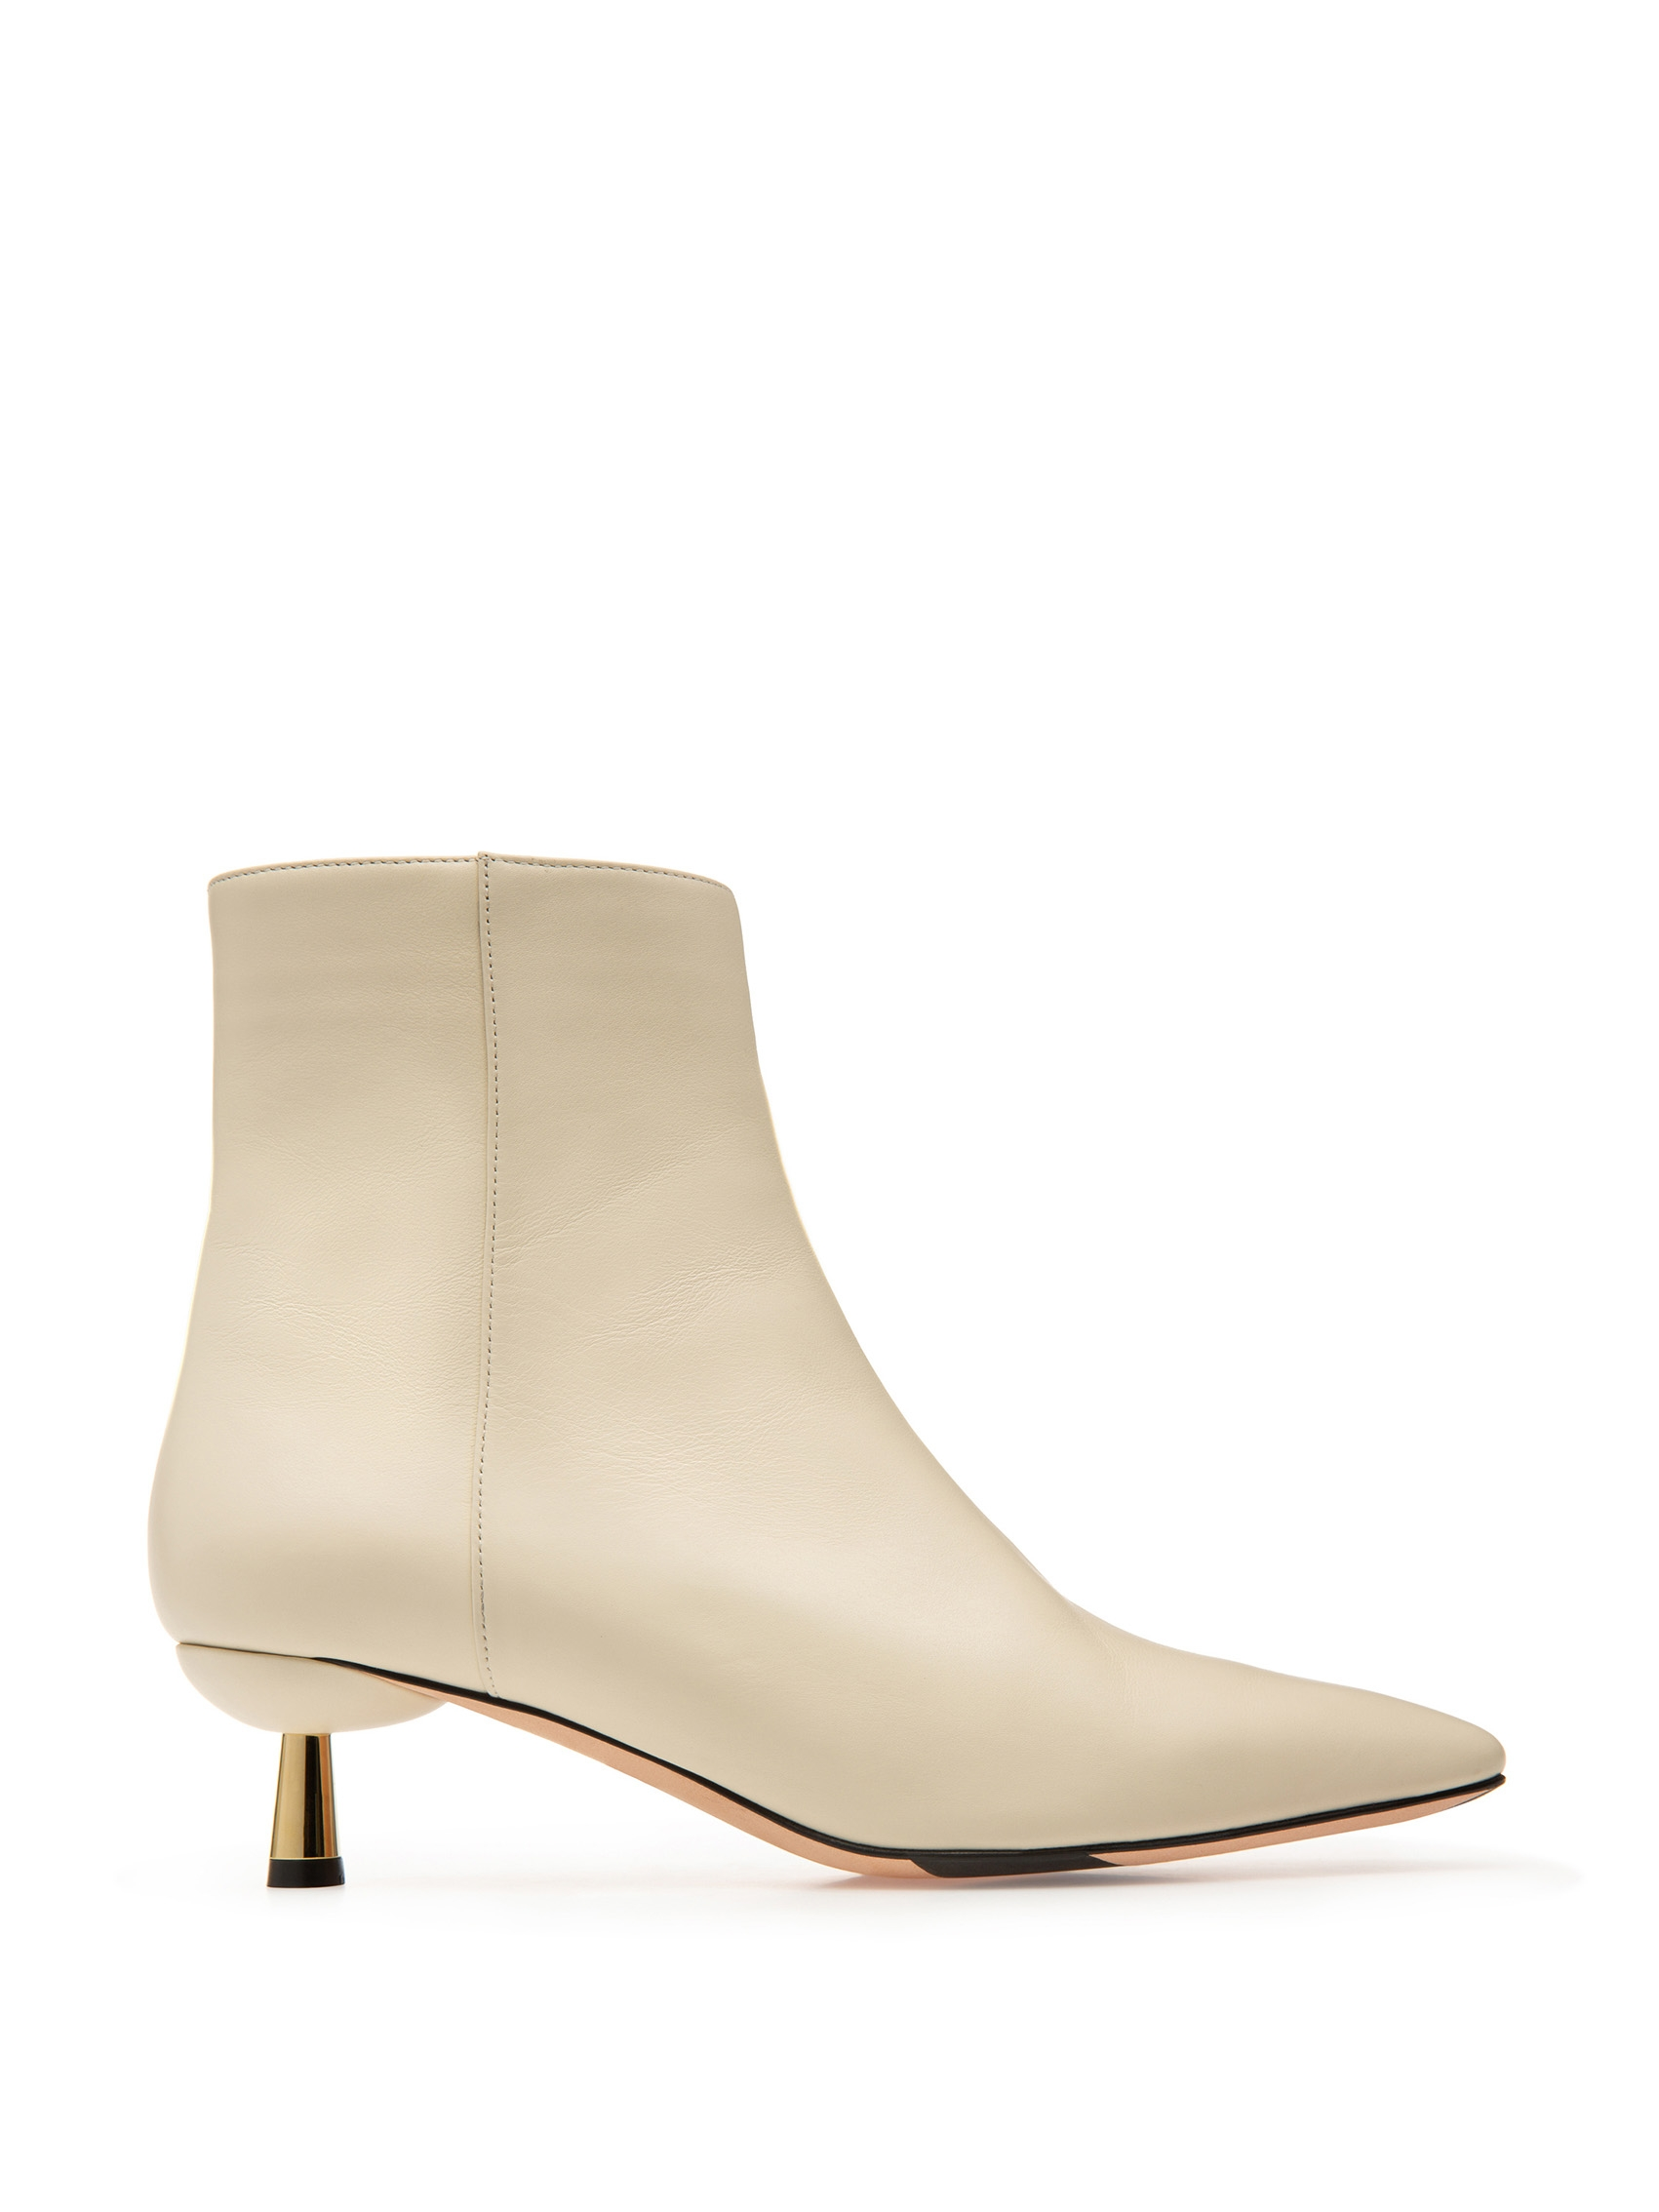 bally-ss20-women-callie_casie_45_008f_online